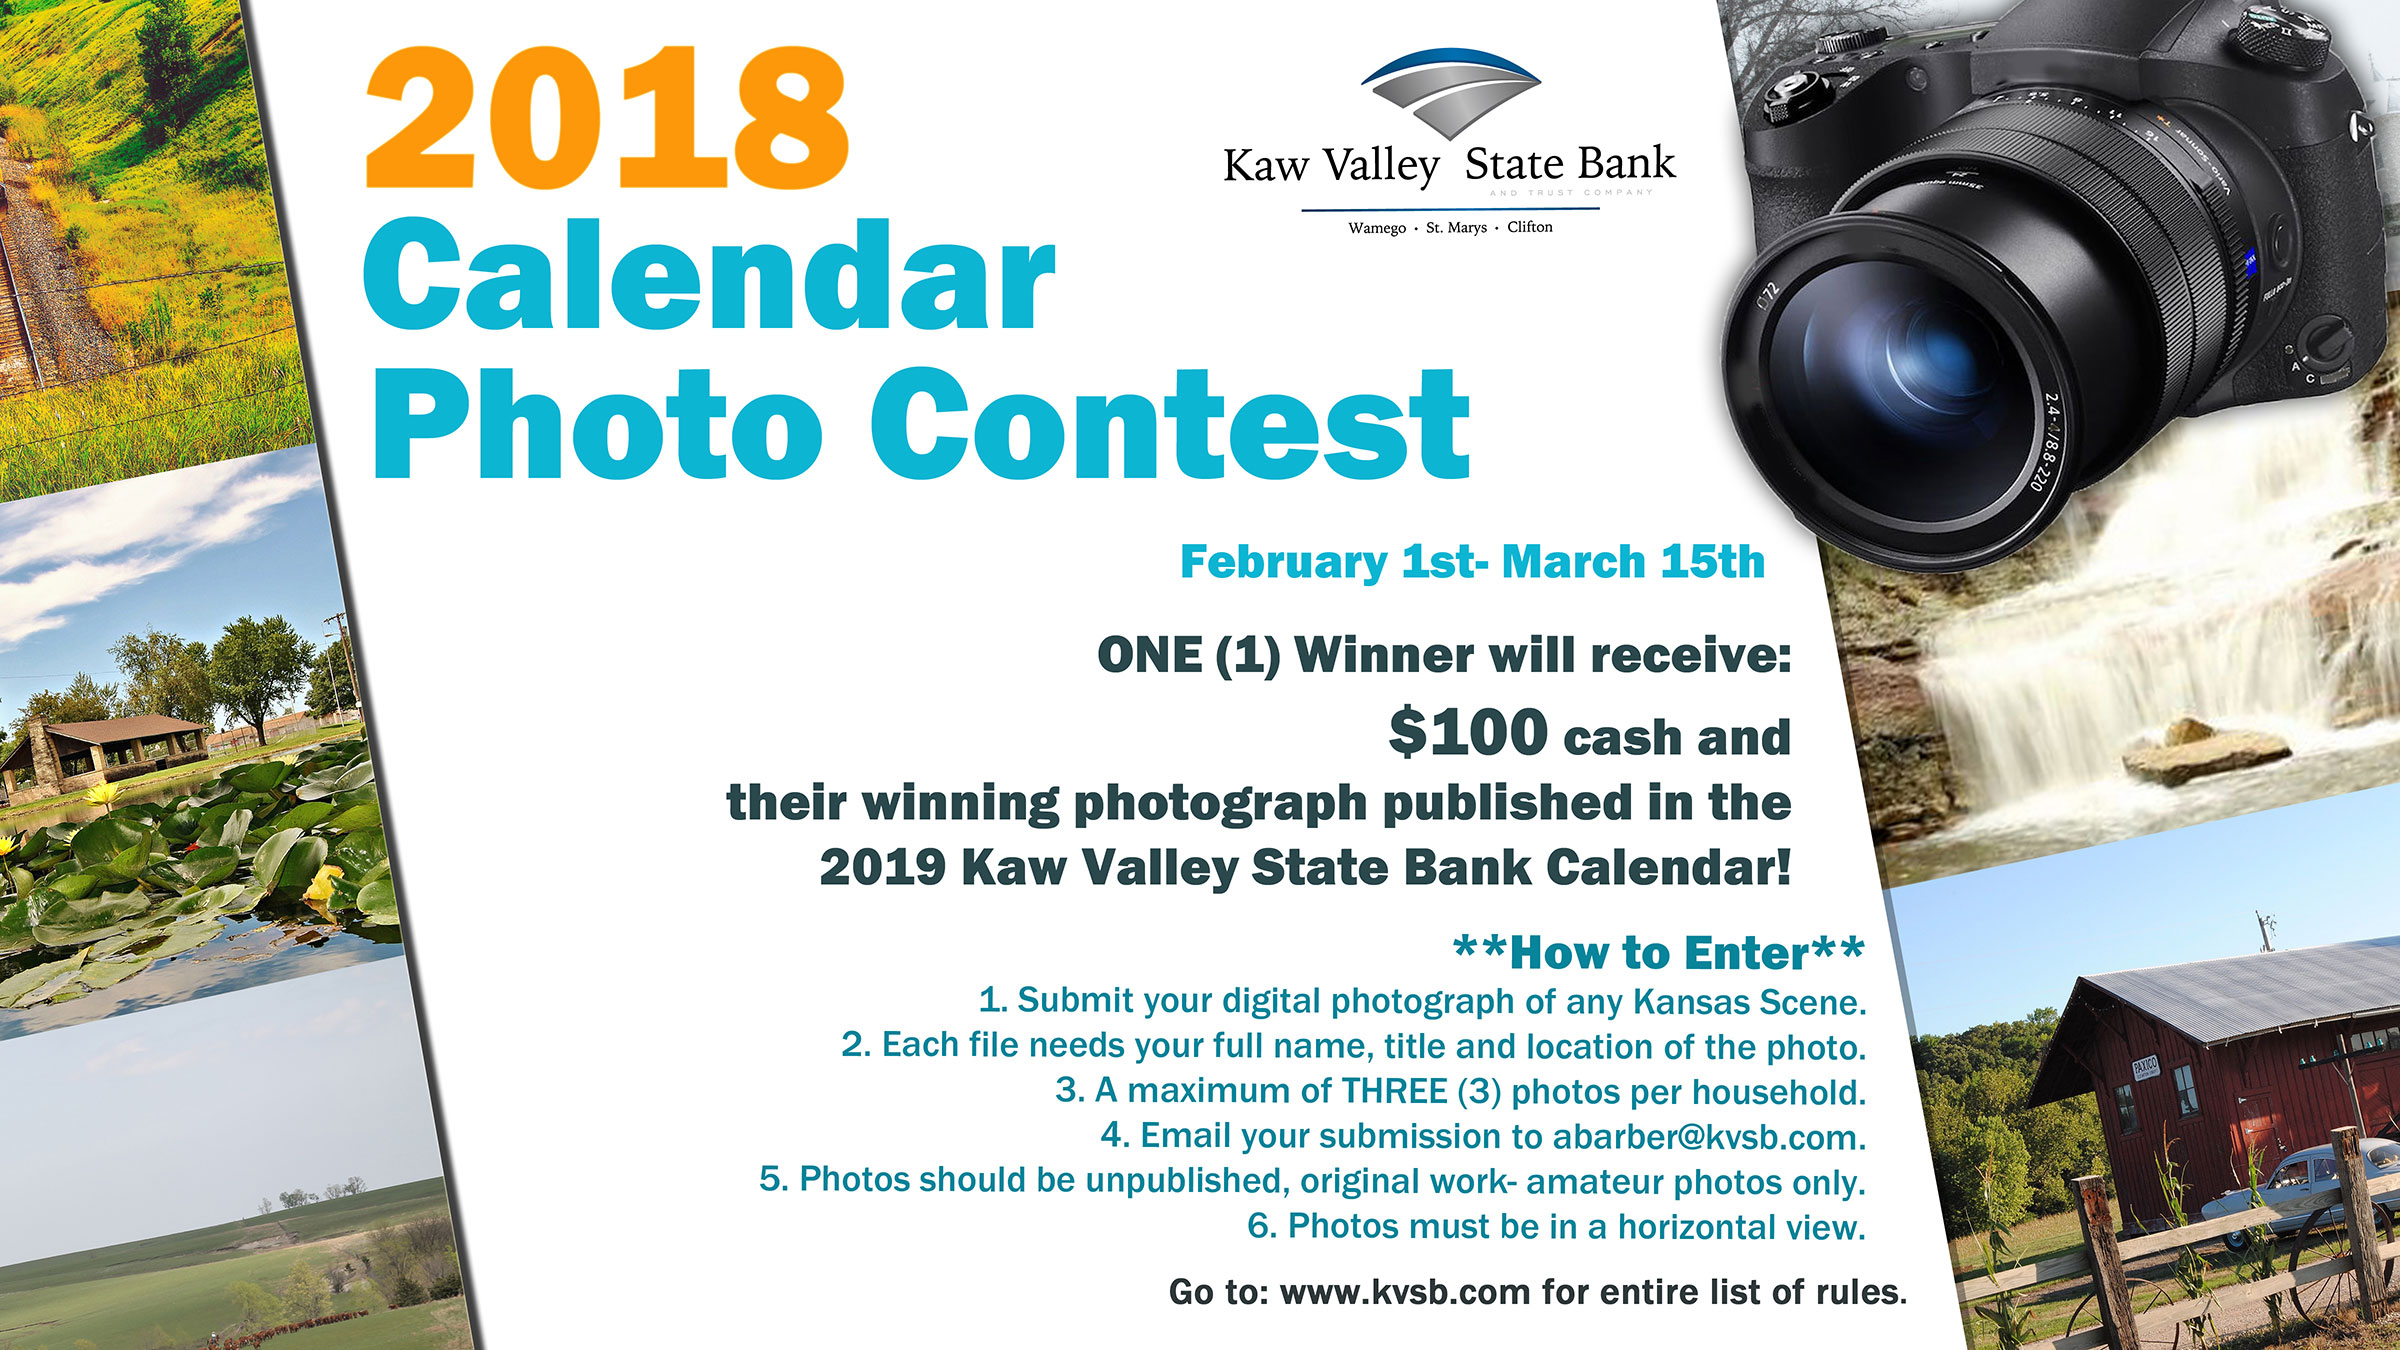 Calendar Photography Submissions : Calendar photo contest kaw valley state bank